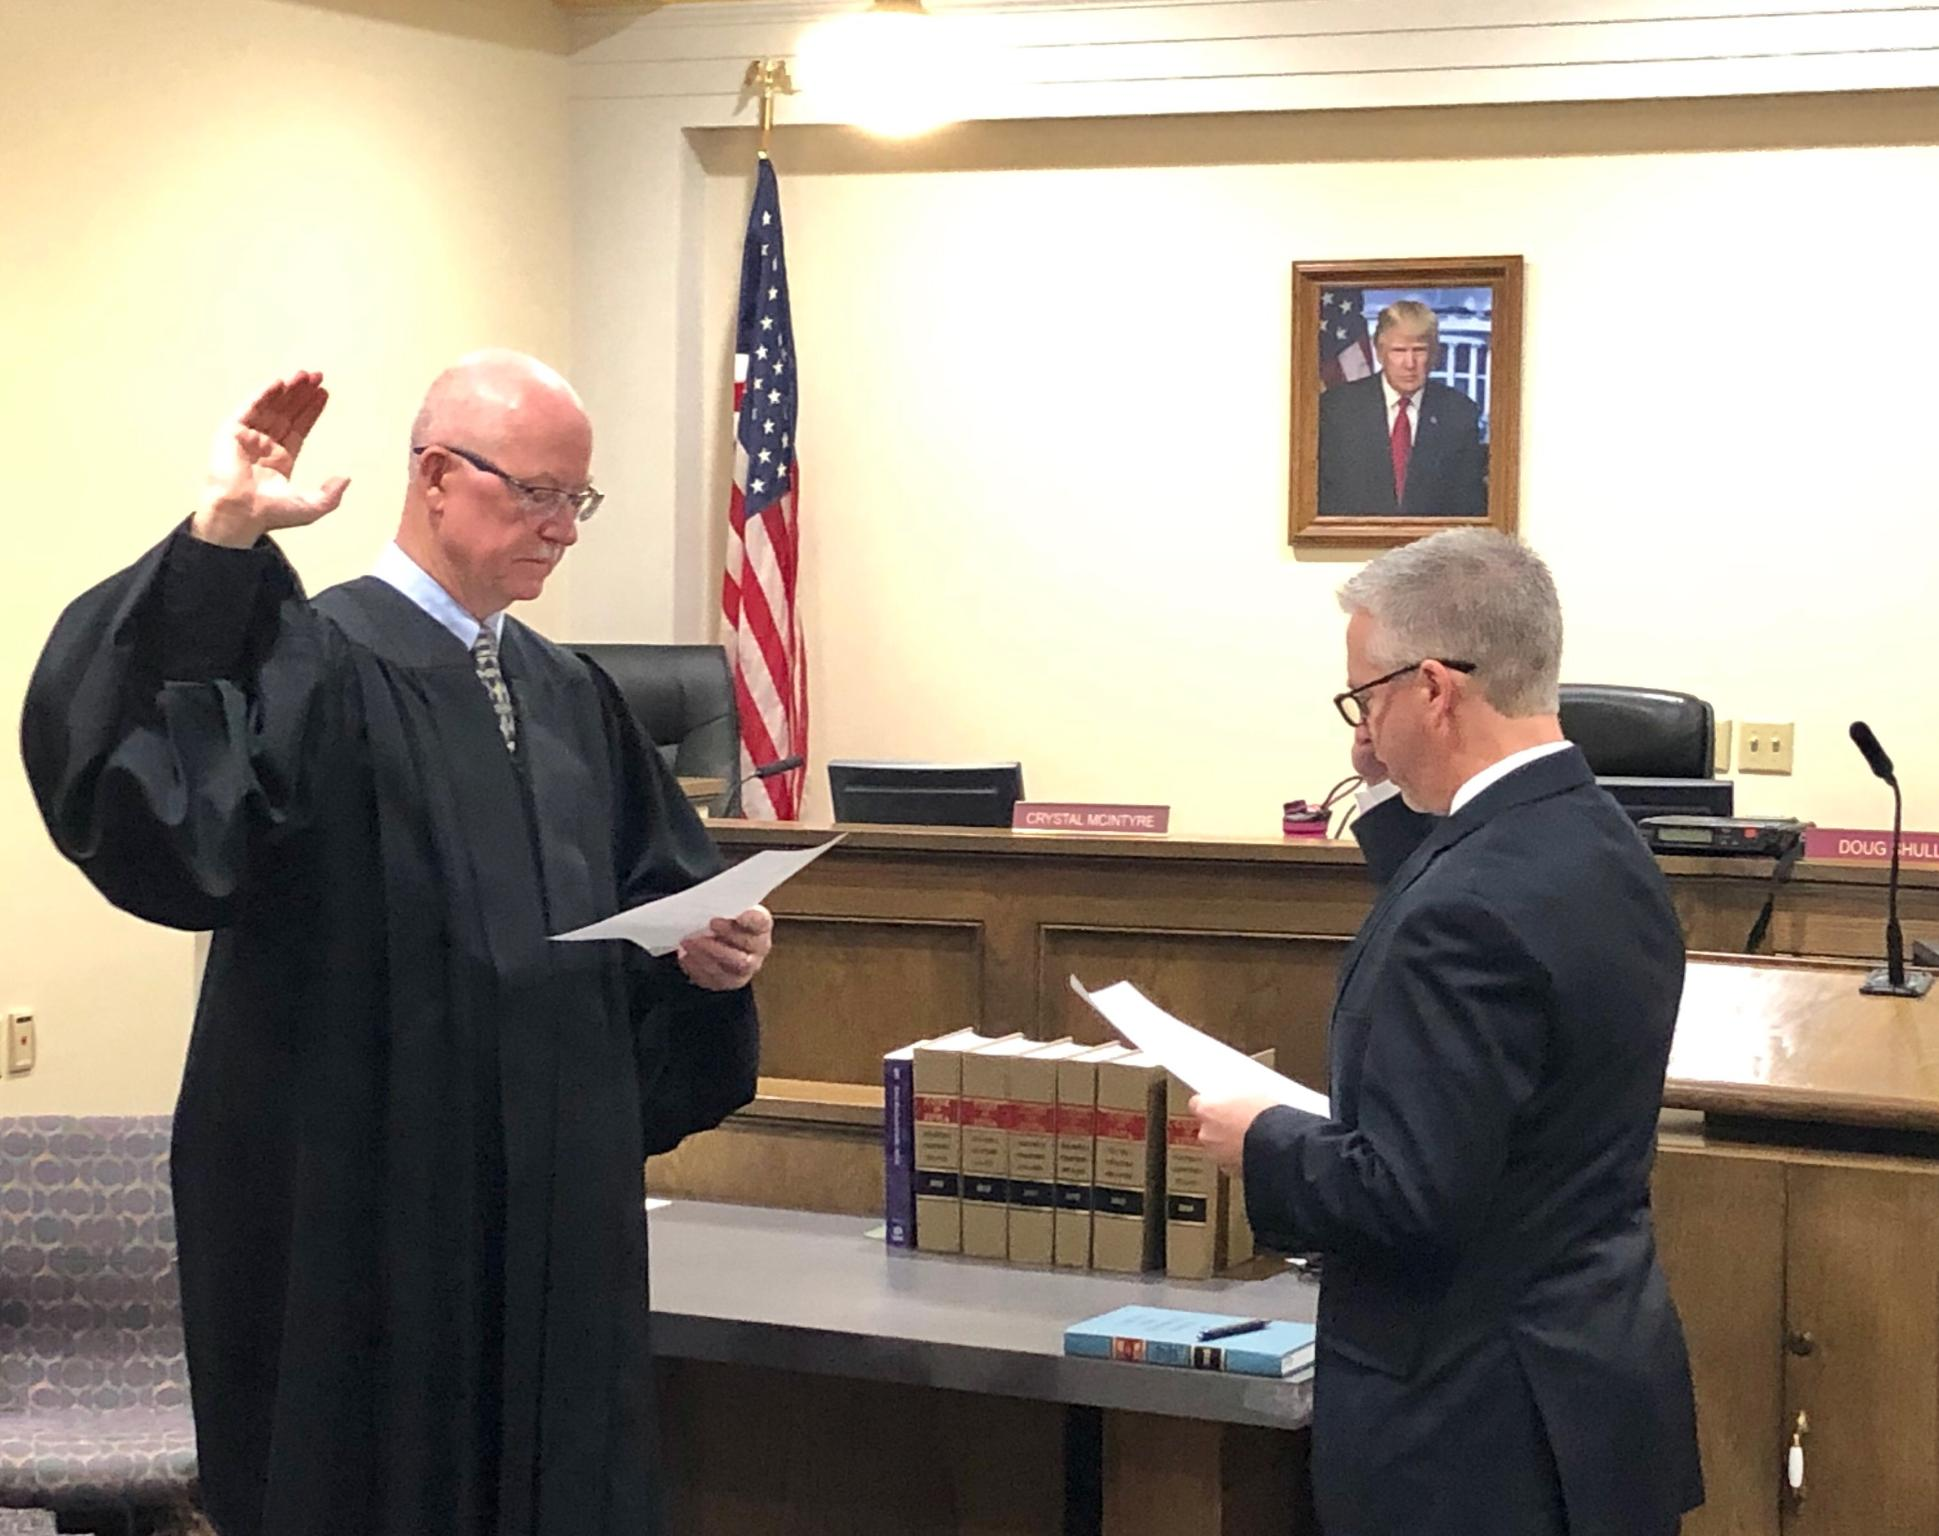 Doug Eichholz Taking Oath